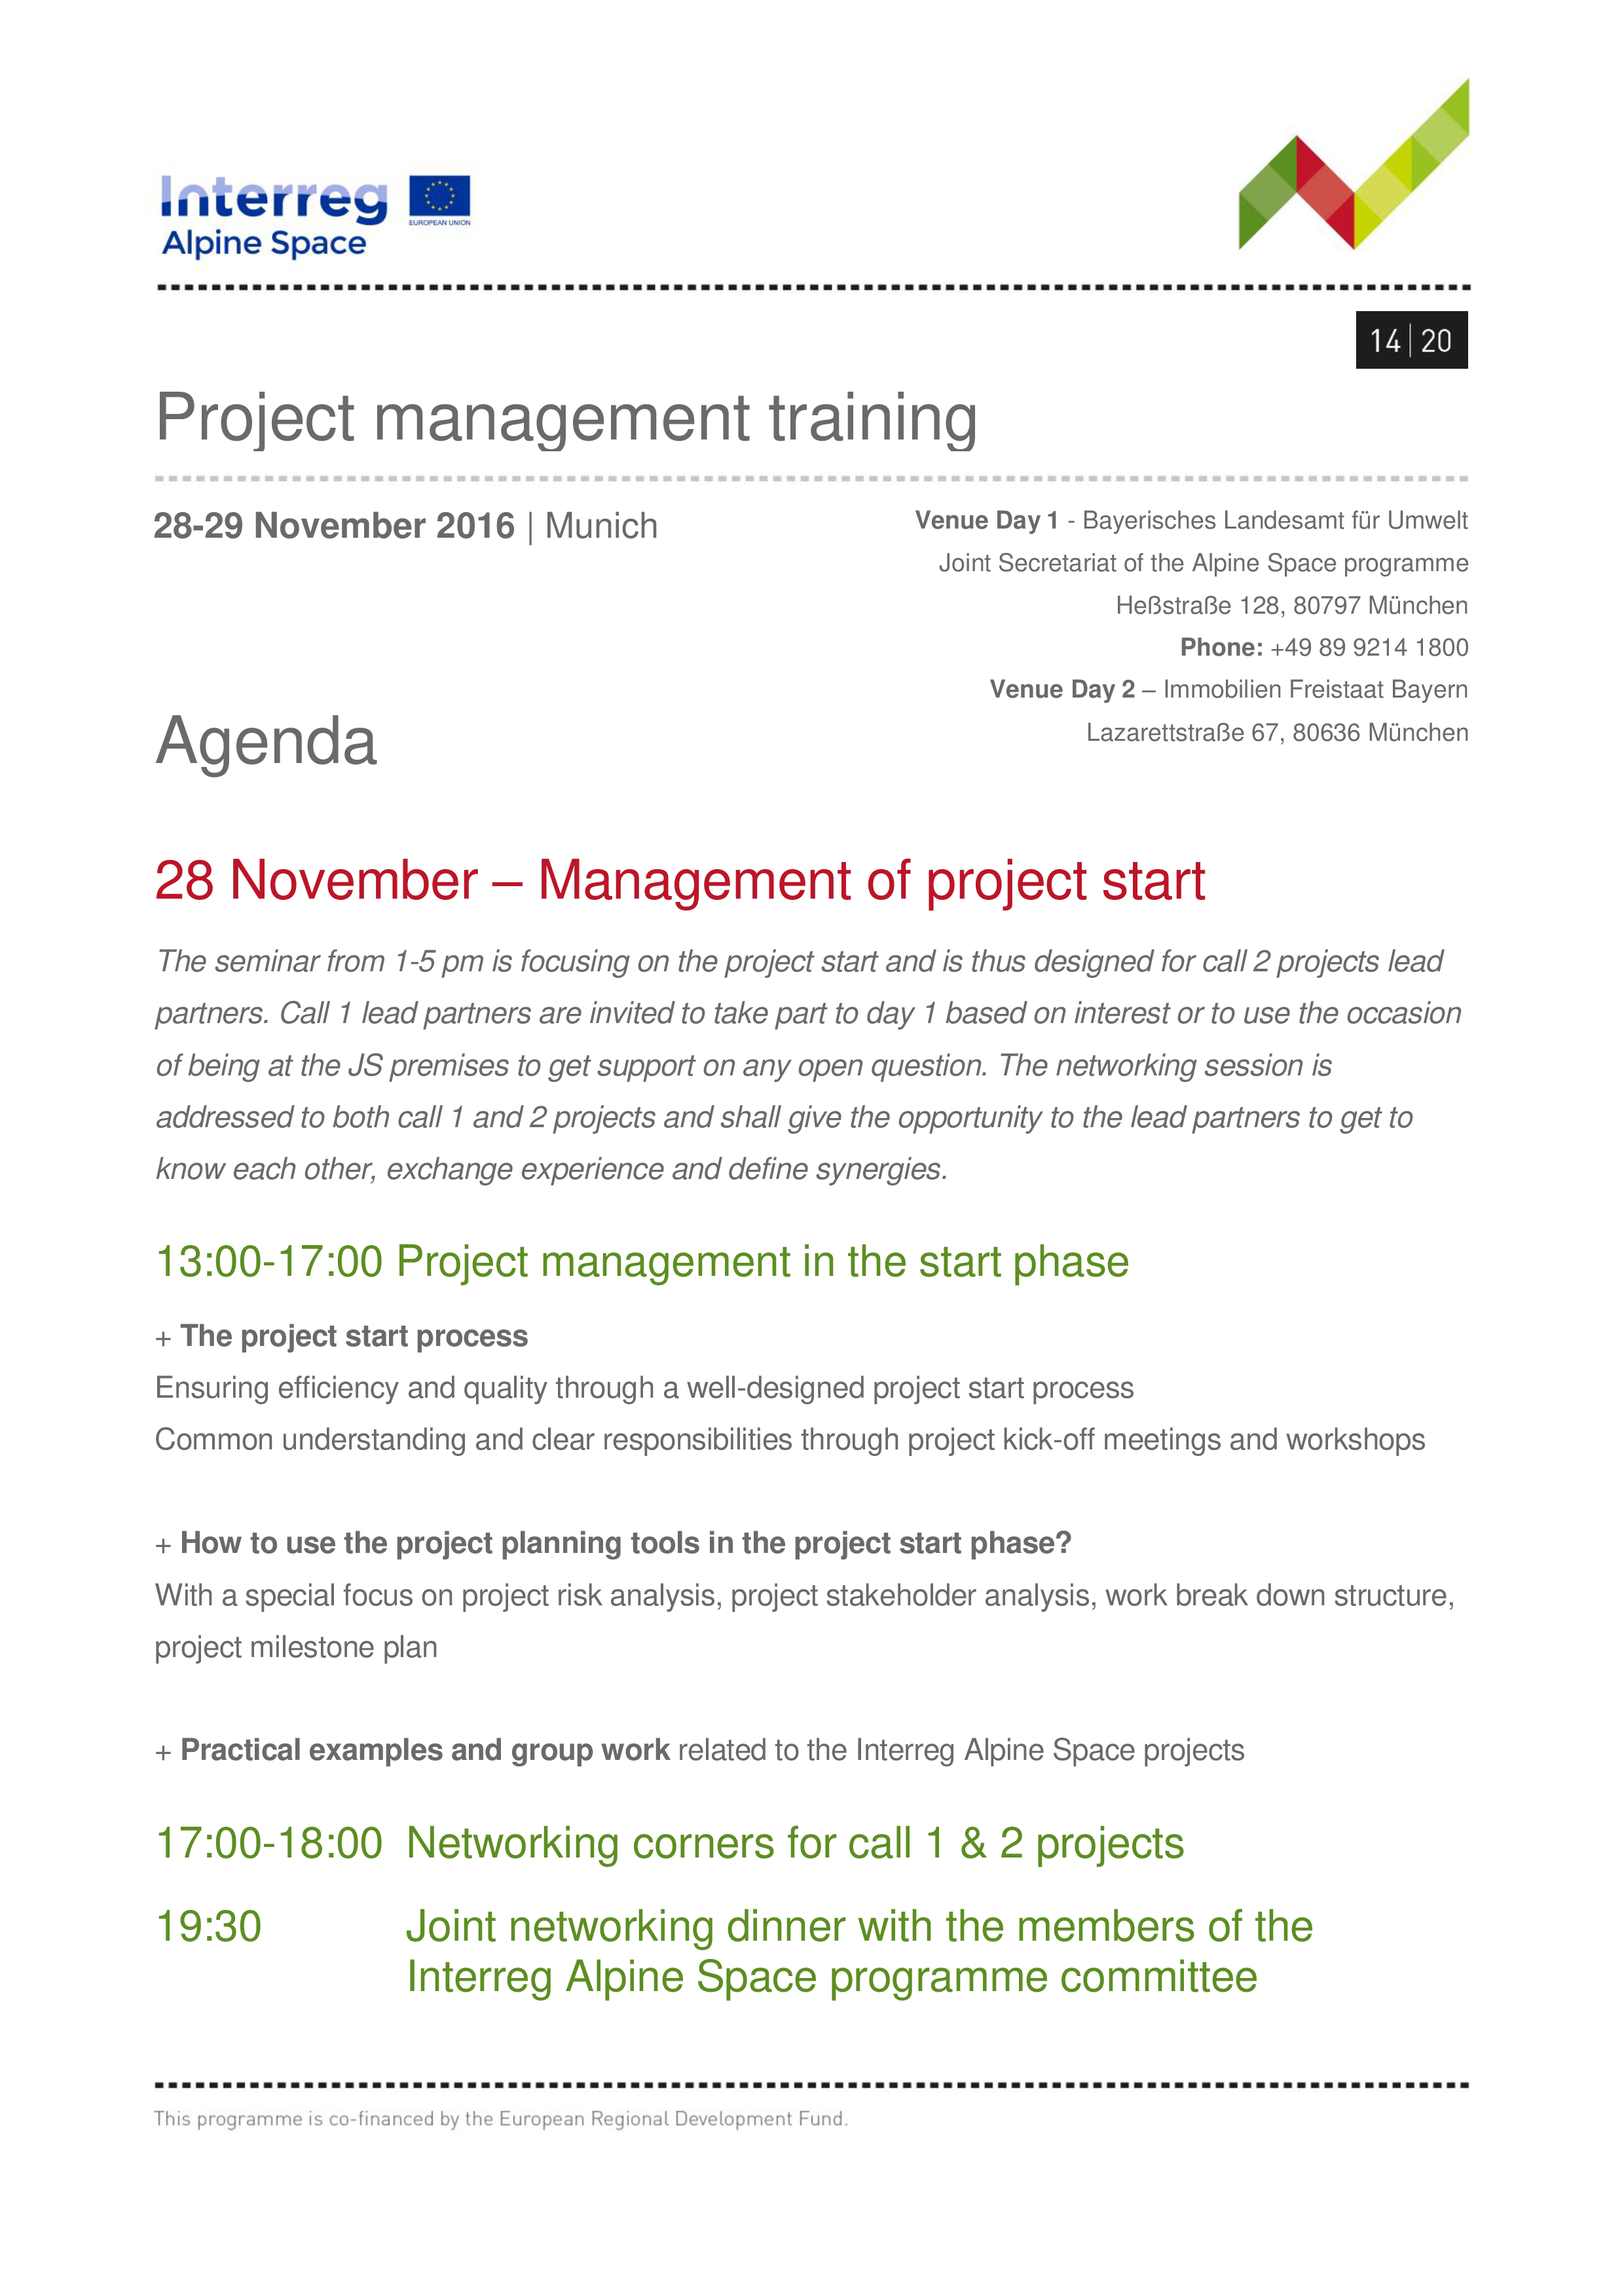 Project Management Agenda Main Image Download Template